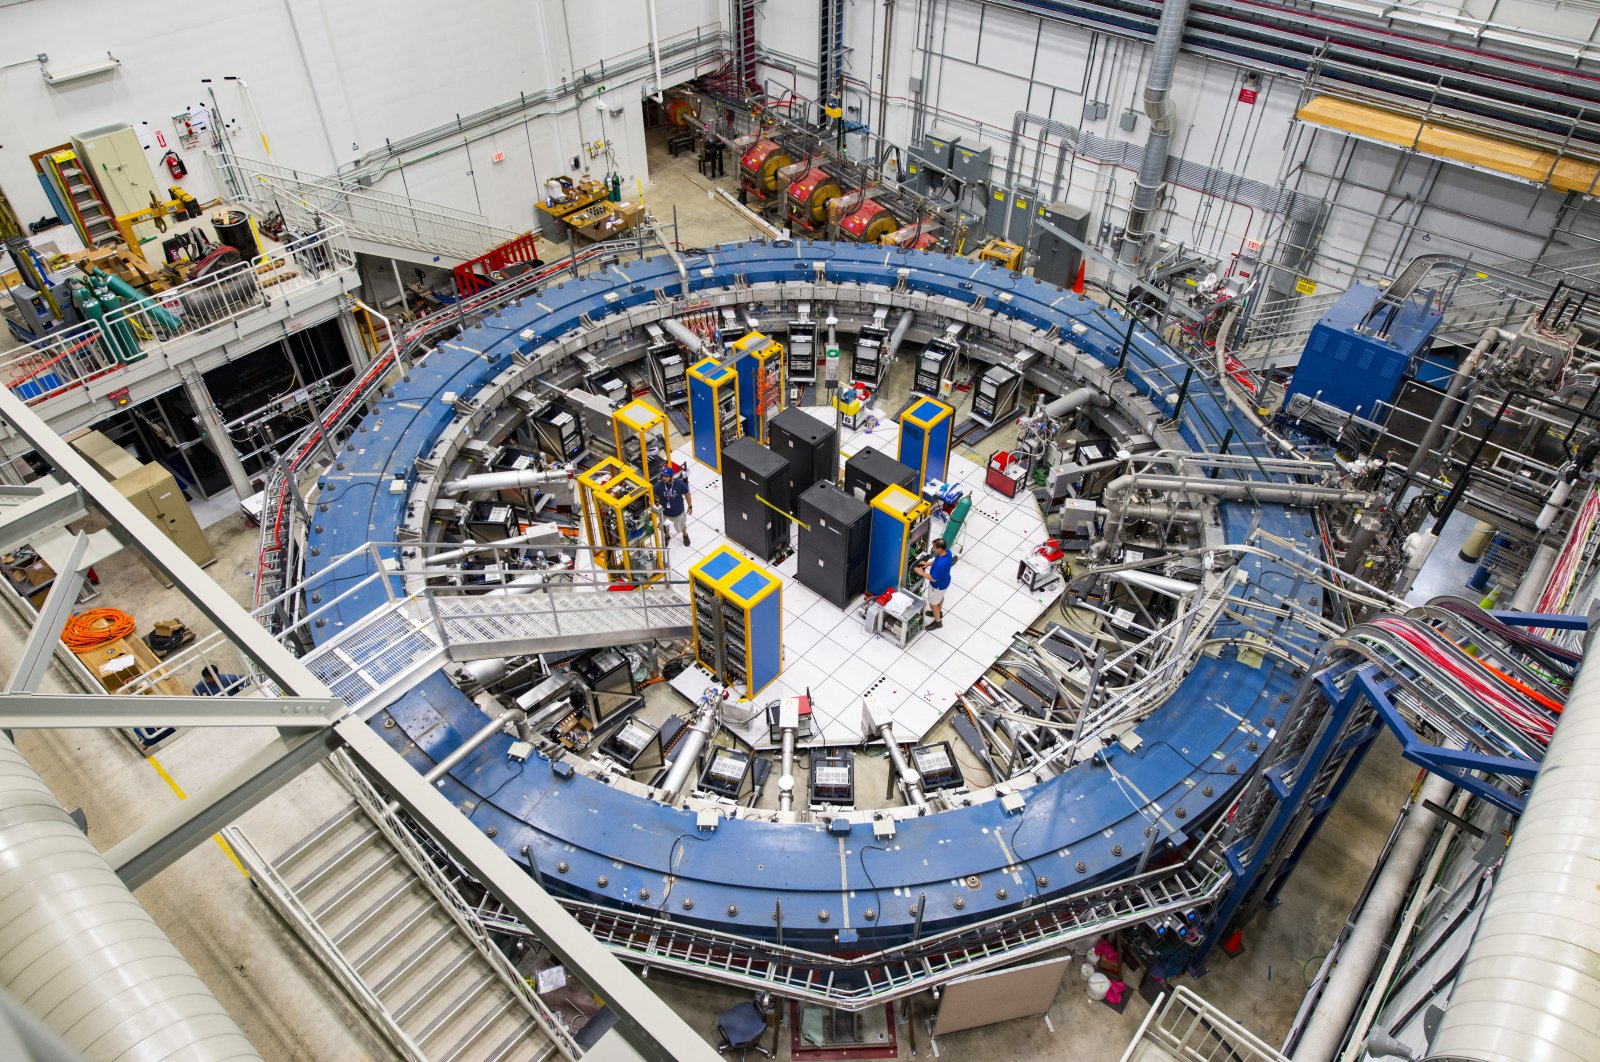 This August 2017 photo made available by Fermilab shows the Muon g-2 ring at the Fermi National Accelerator Laboratory outside of Chicago, U.S. (Reidar Hahn/Fermilab via AP)